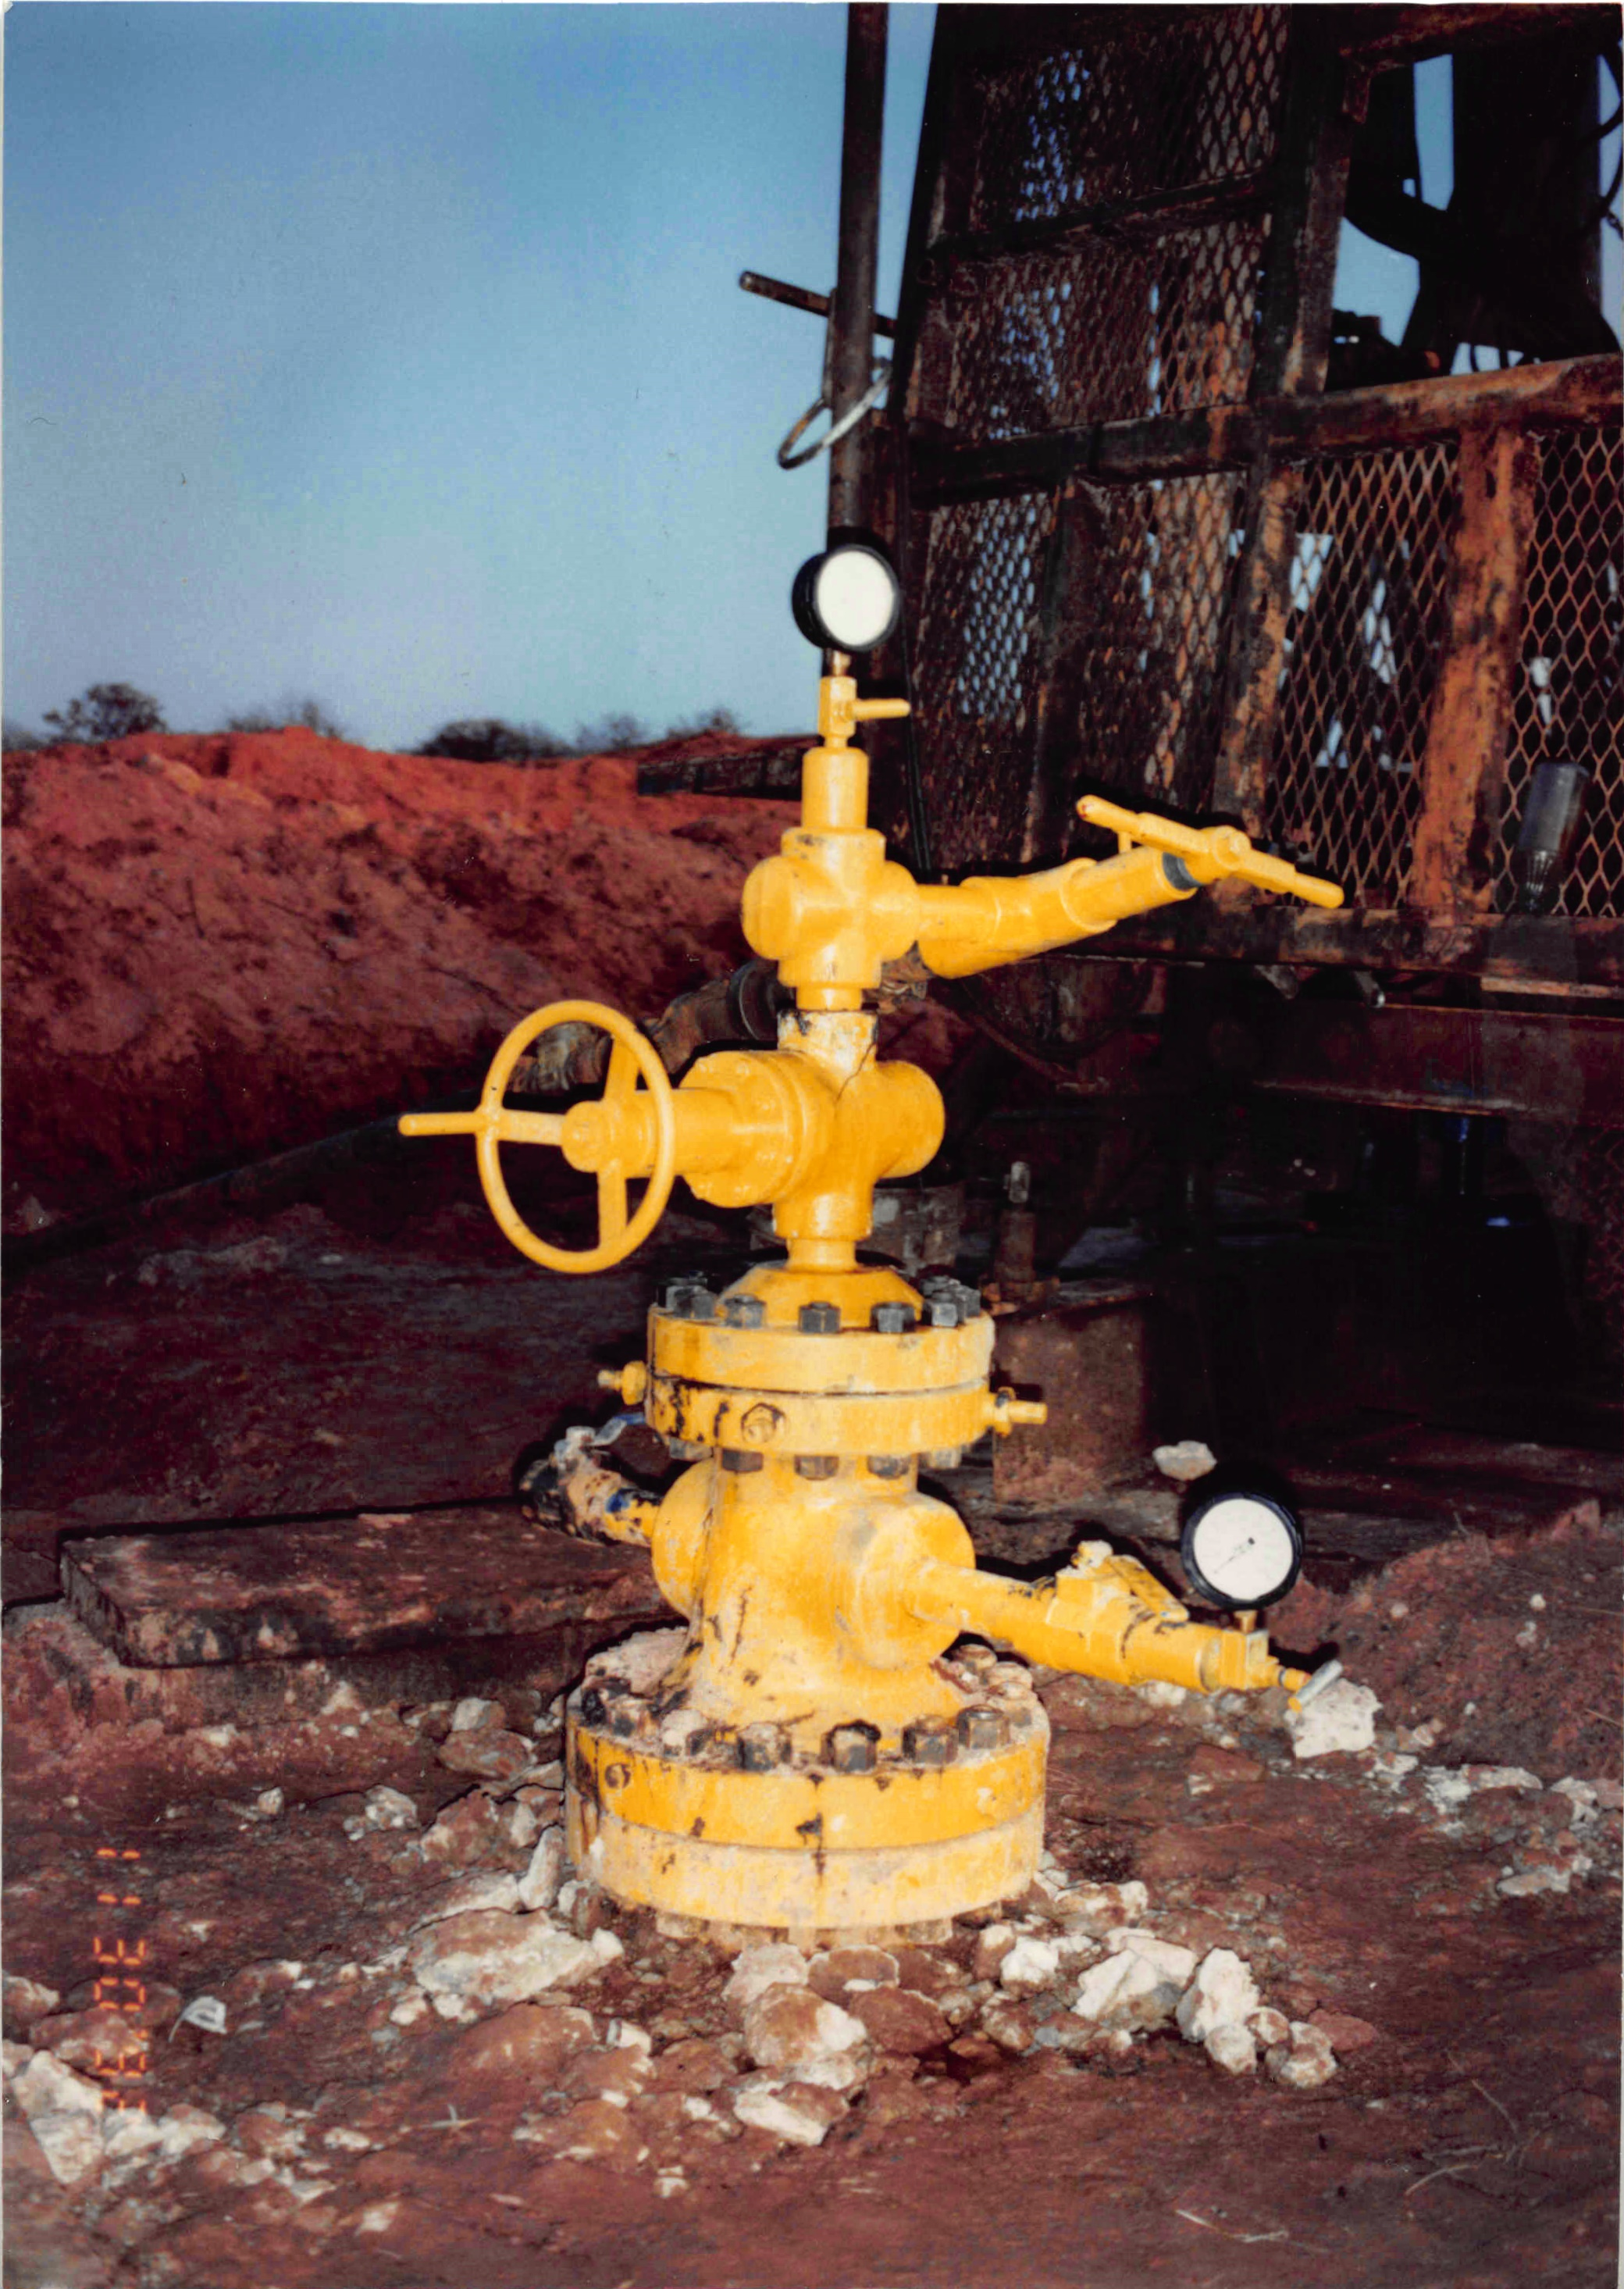 Garrison #1-  29. The first well over which ROX Exploration, Inc. supervised all drilling, completion, and operations.